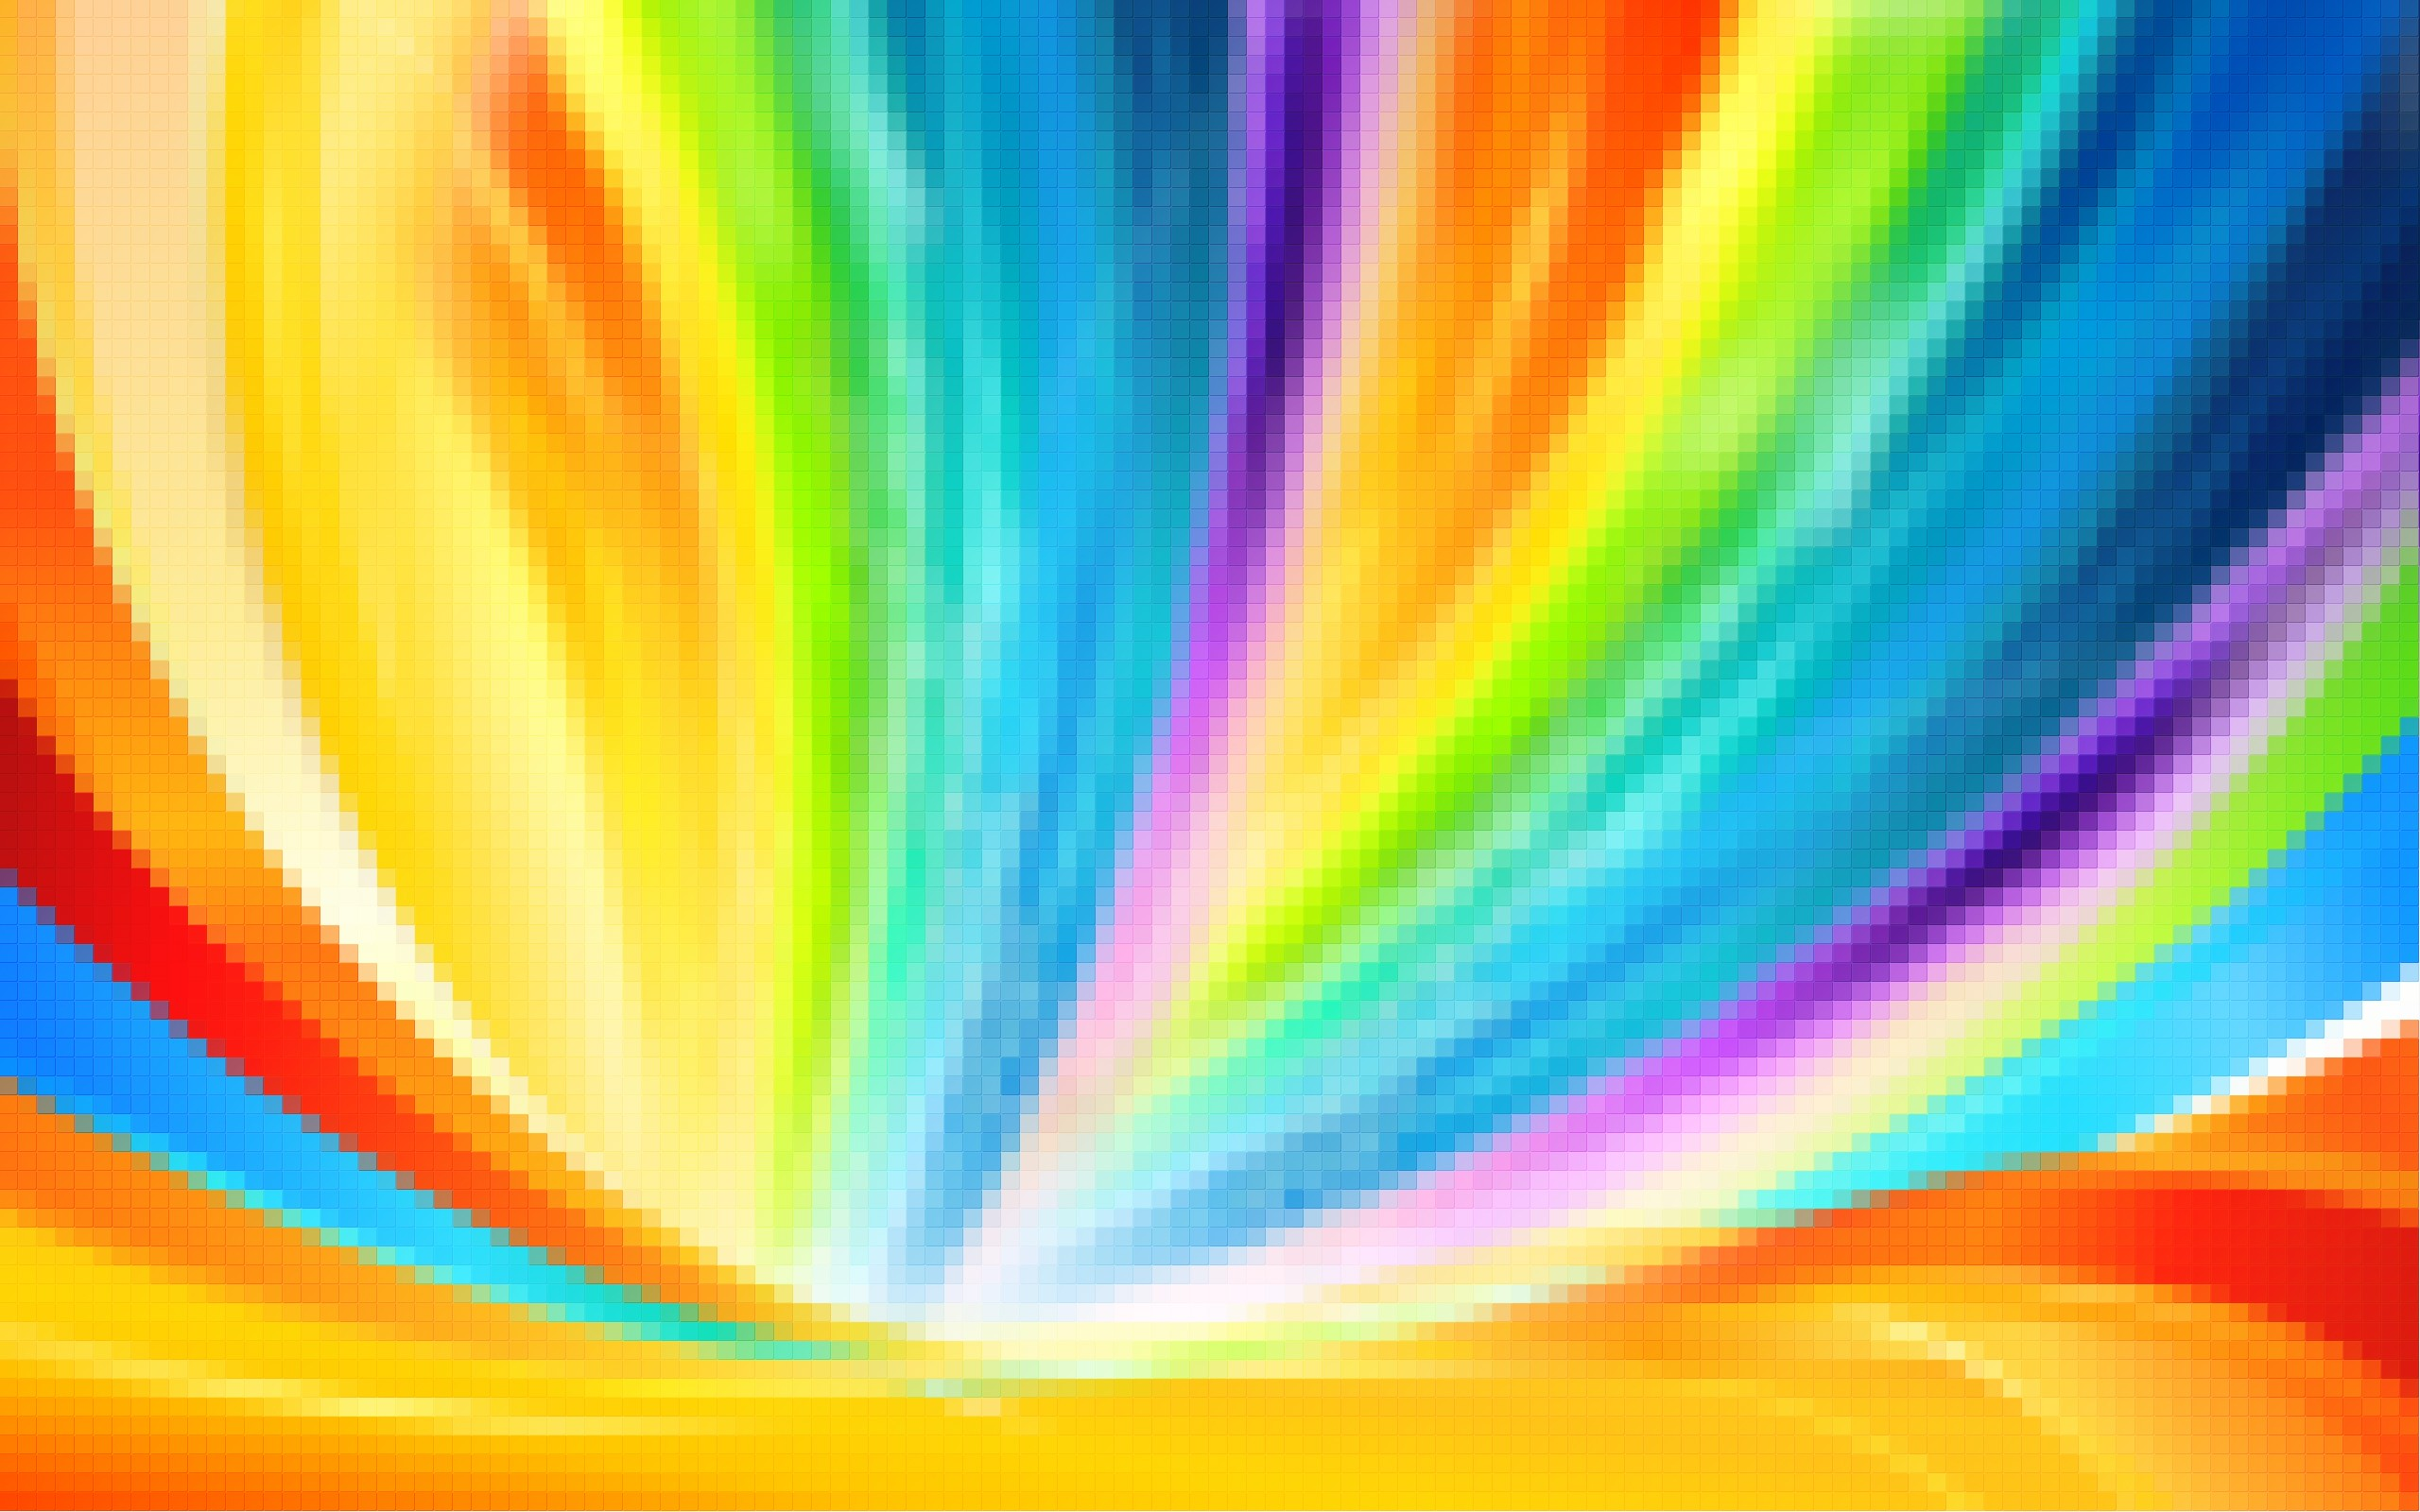 Multicolor wallpaper | 2560x1600 | #3522